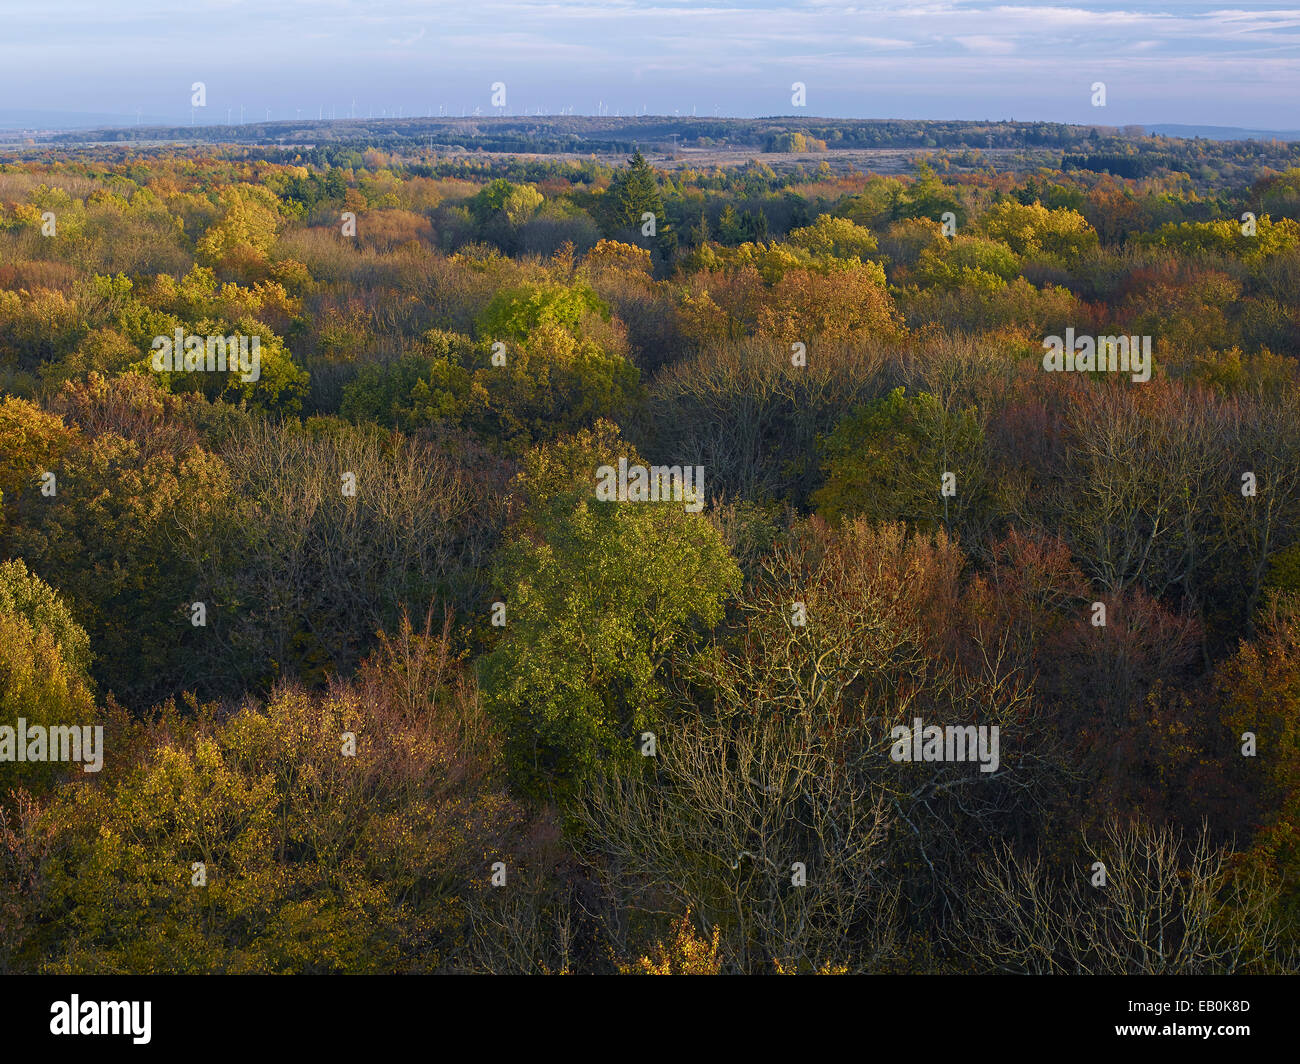 View over the Hainich from the treetop walkway, Germany - Stock Image